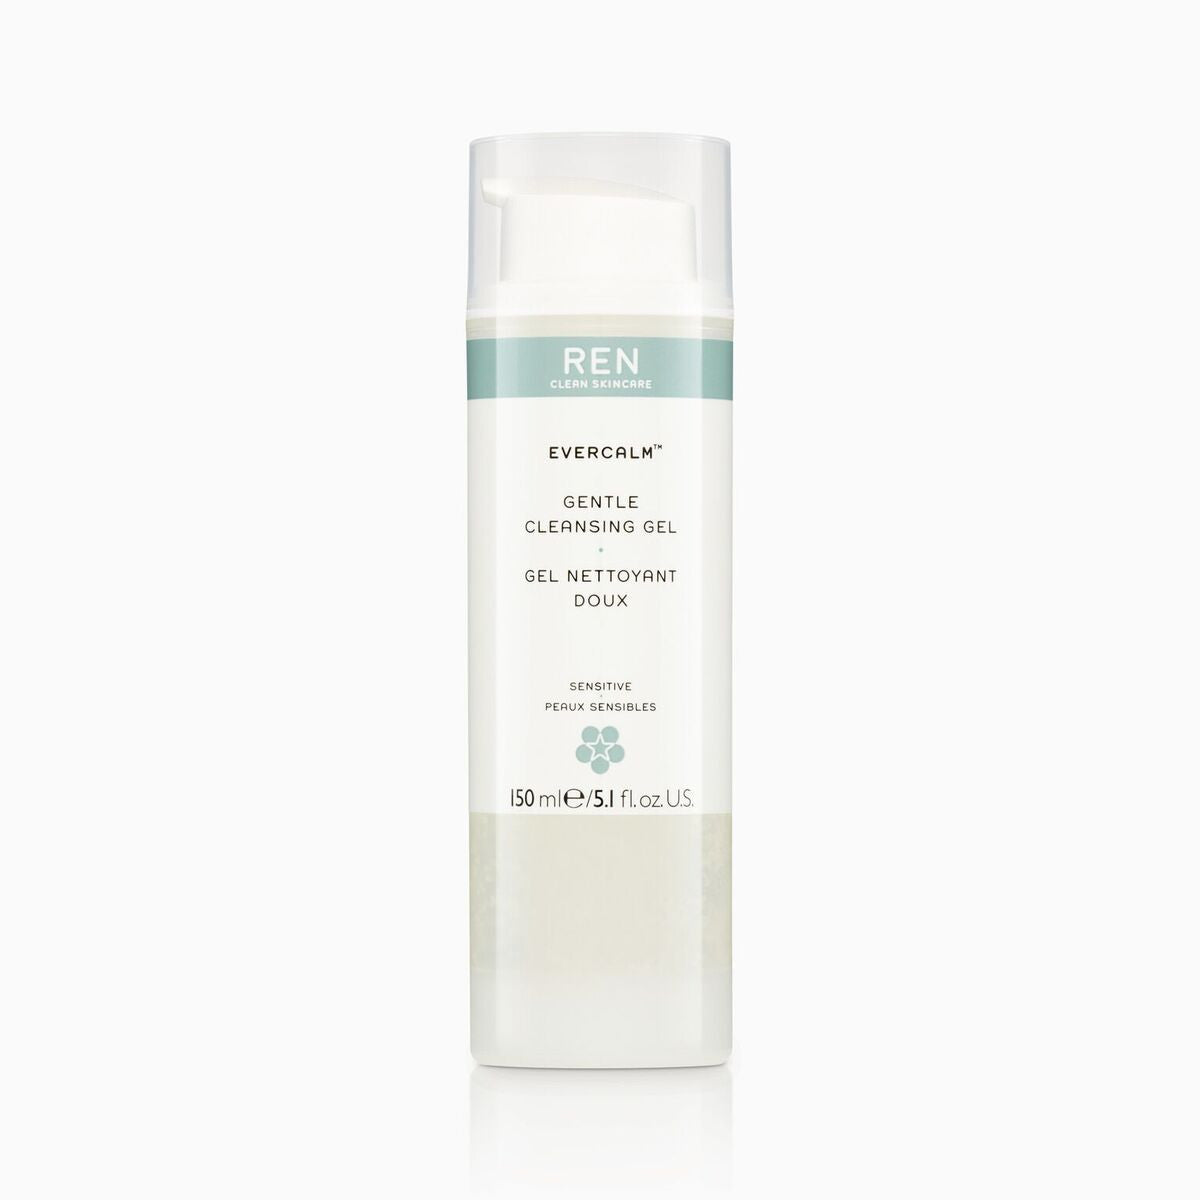 ren - gentle cleansing gel